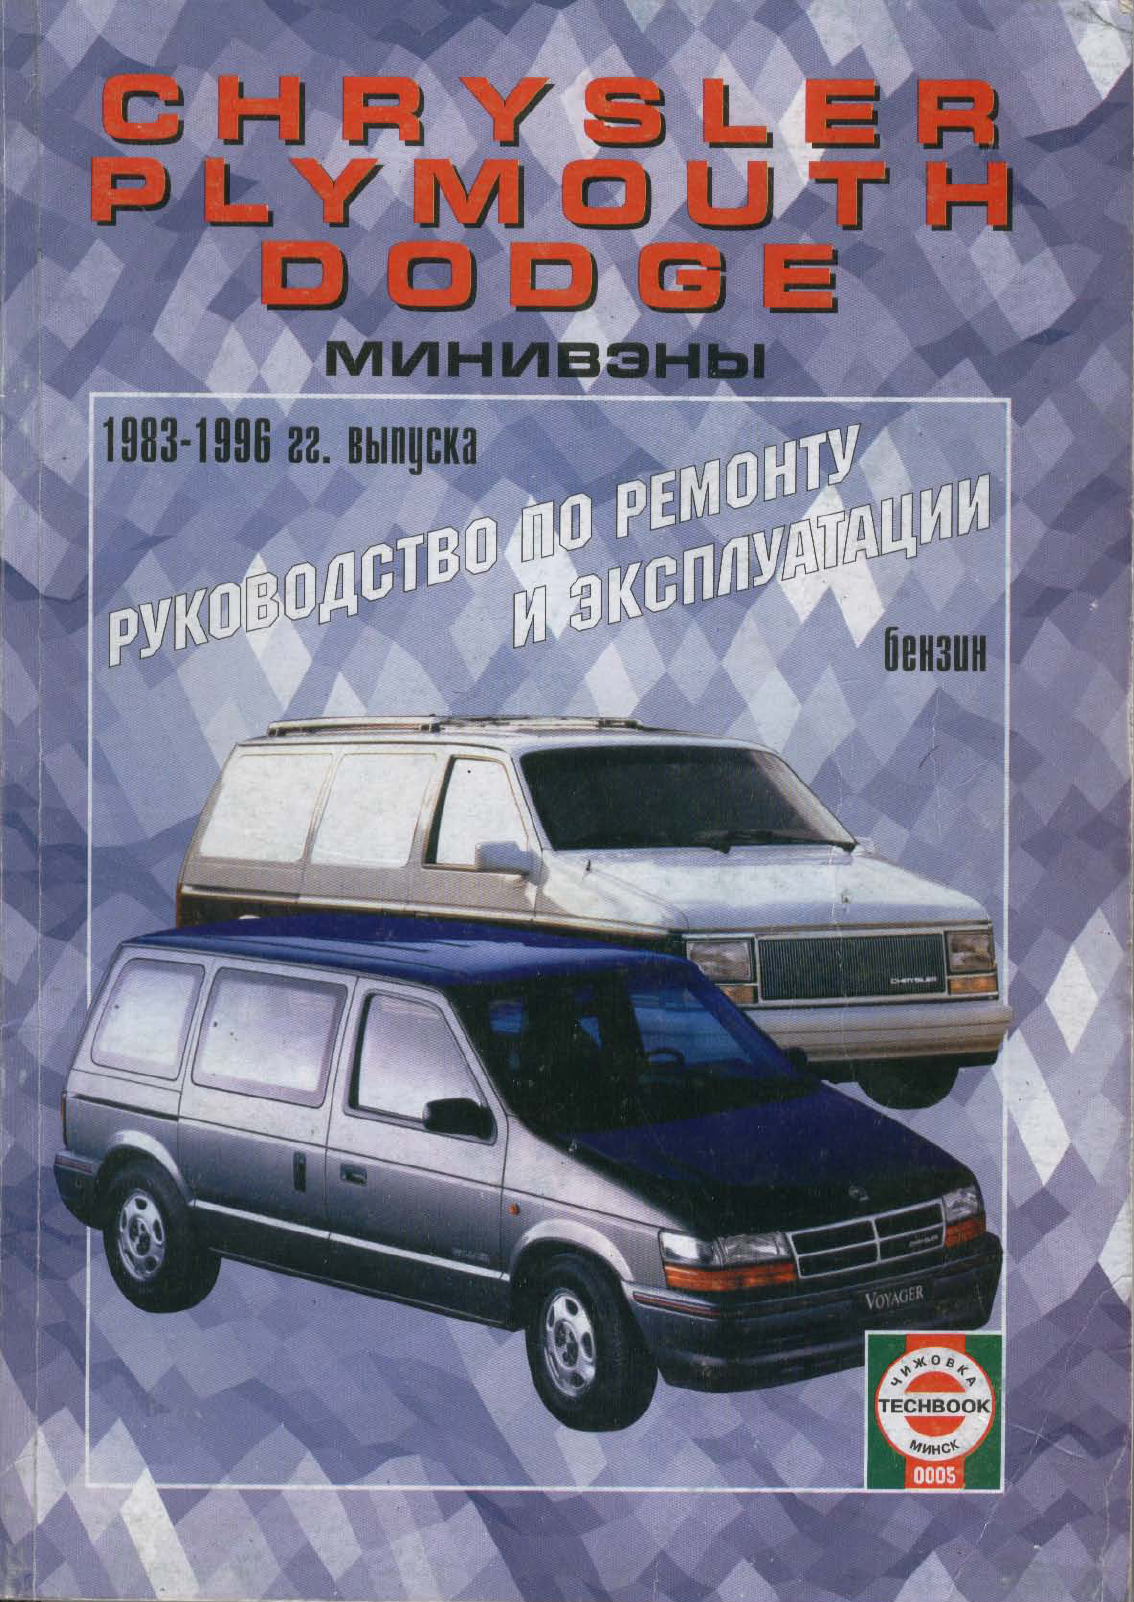 See our other Chrysler Voyager Manuals: 1997 Chrysler Voyager Service .